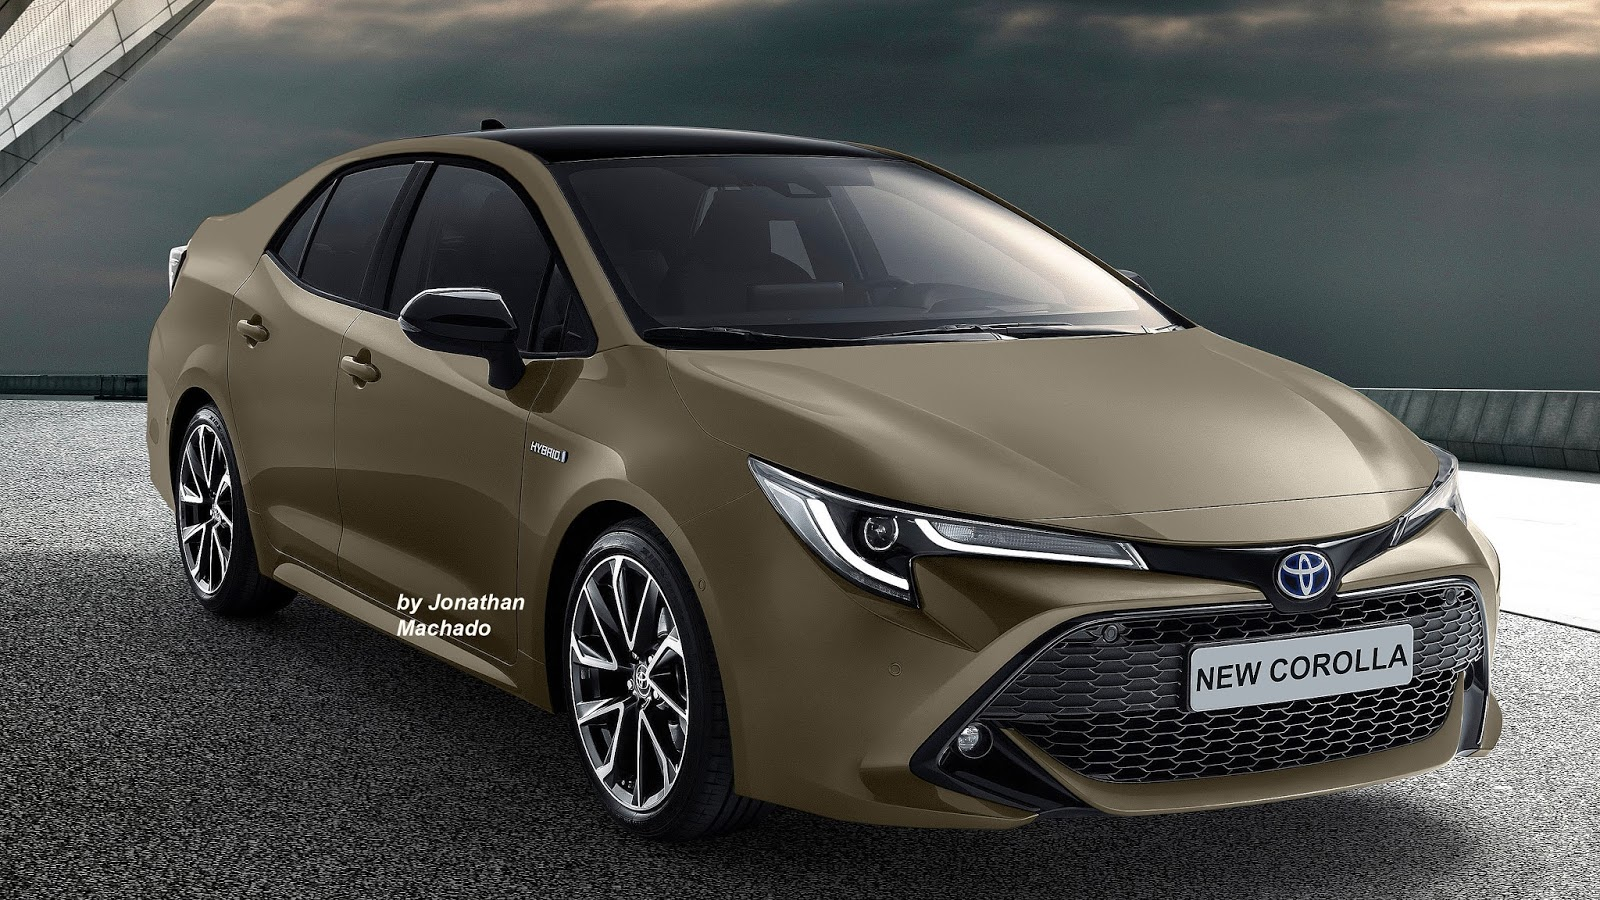 Renderings: Next Generation Toyota Corolla Imagined 2